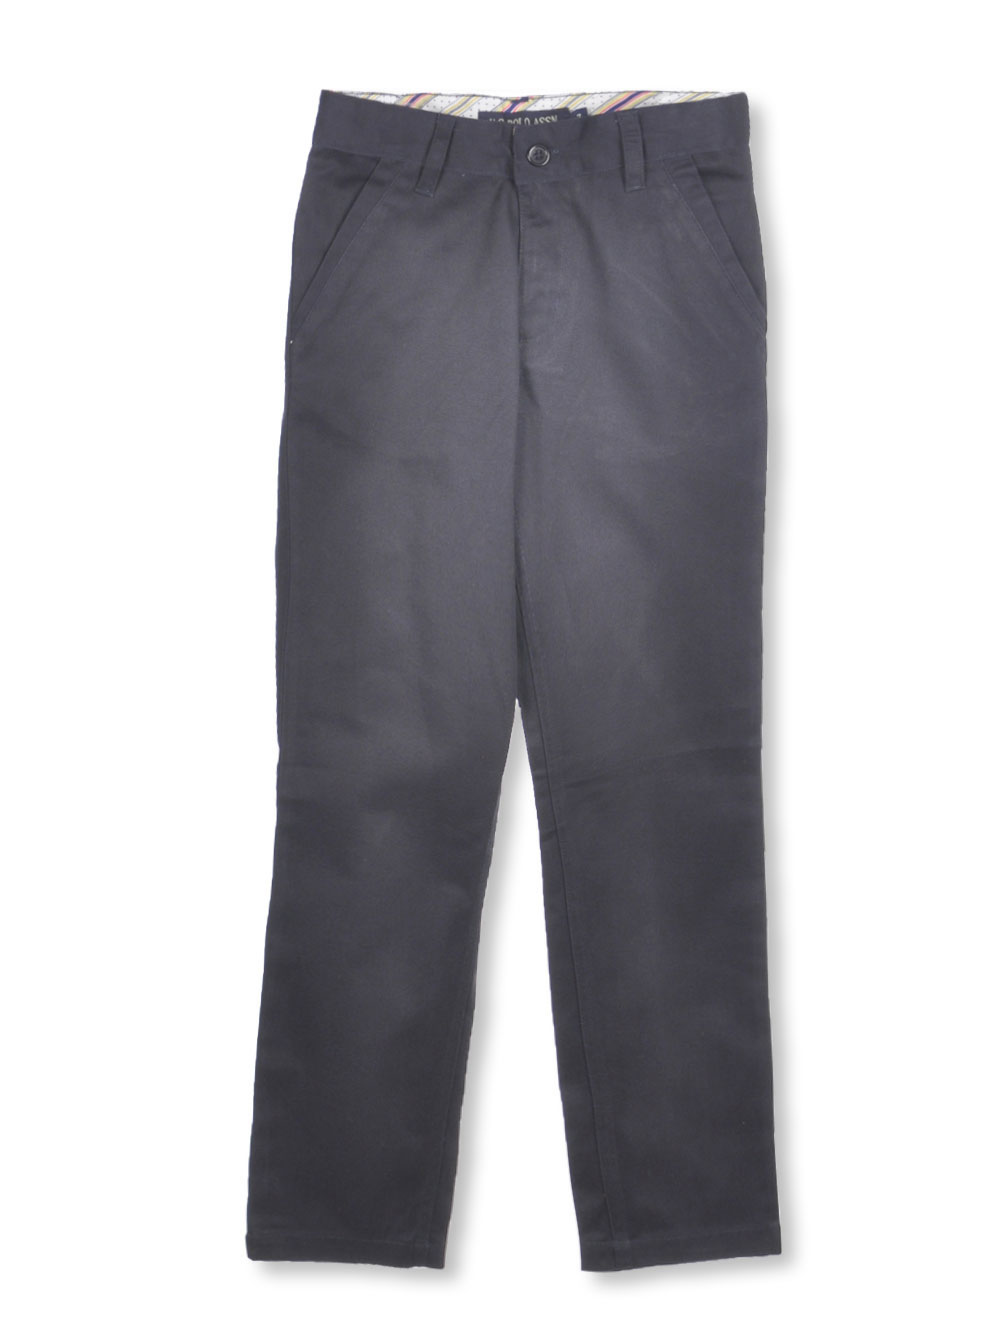 U.S. Polo Assn. Pants